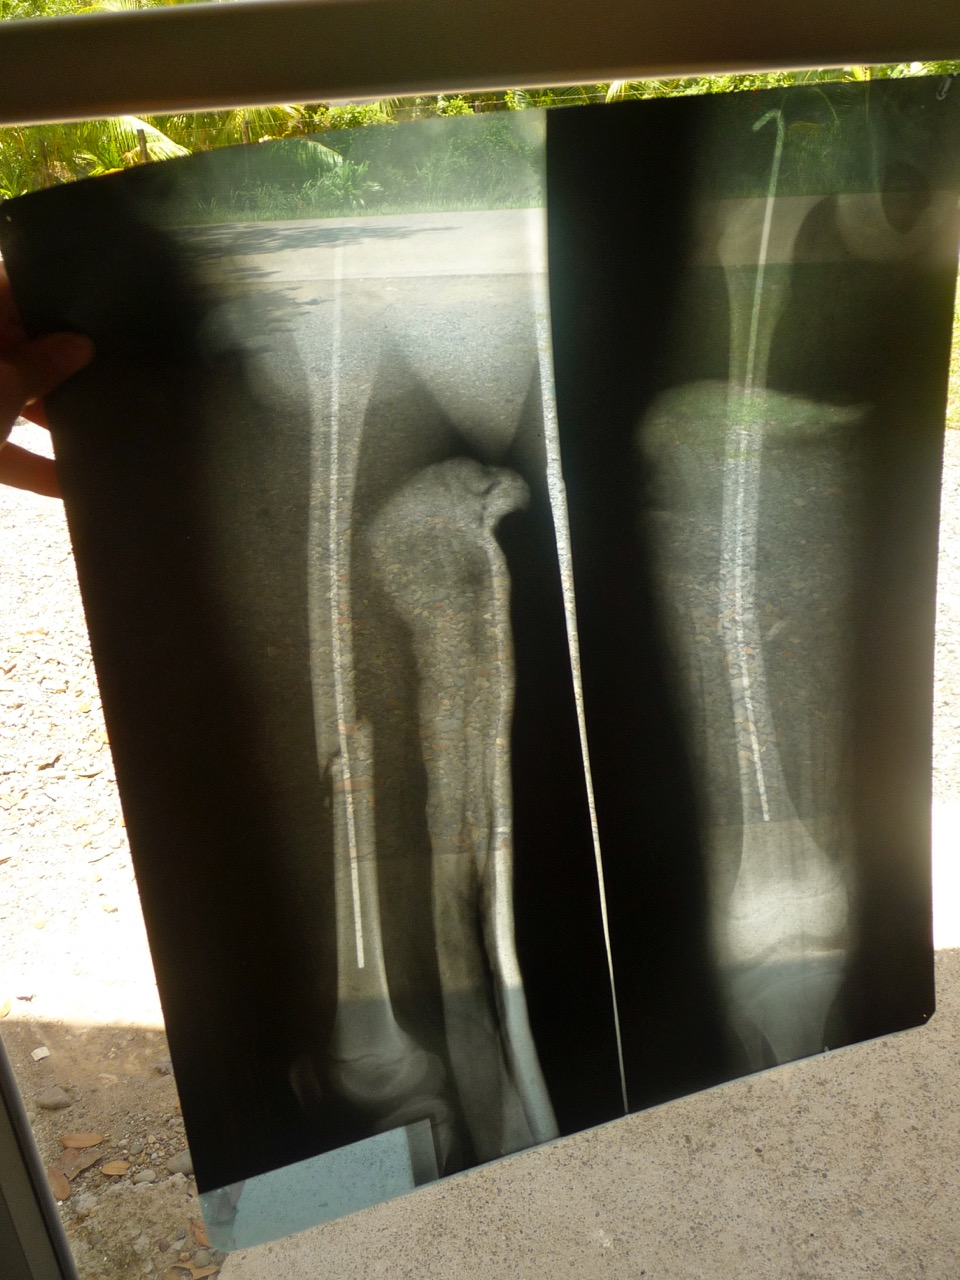 Failed Fixation & Osteomyelitis